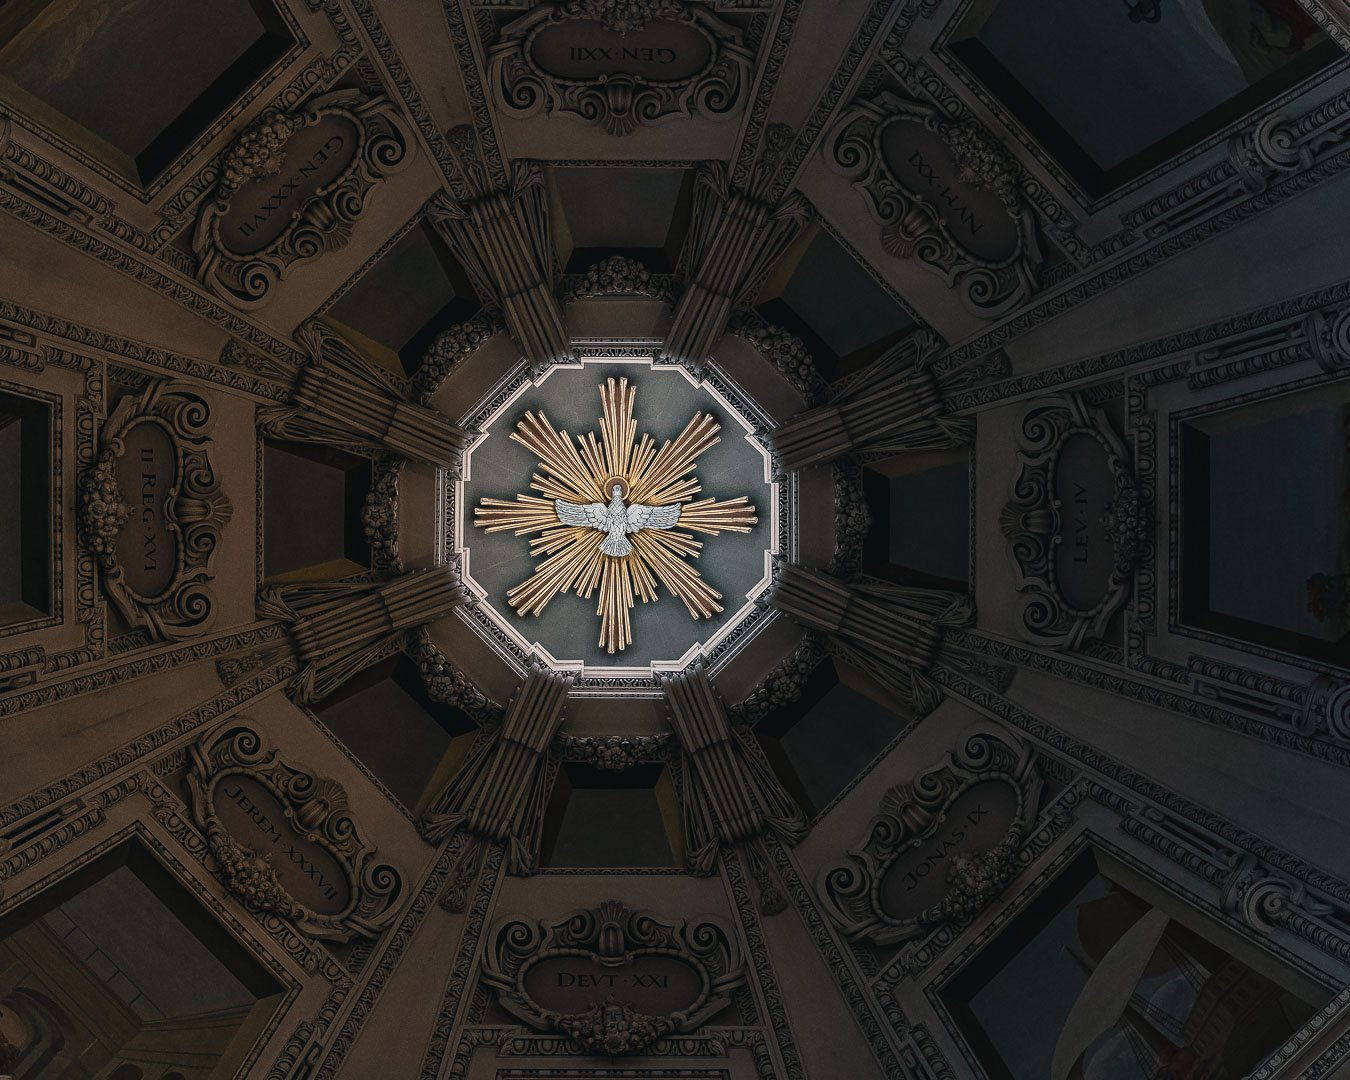 Dove in the dome of the Salzburg Cathedral